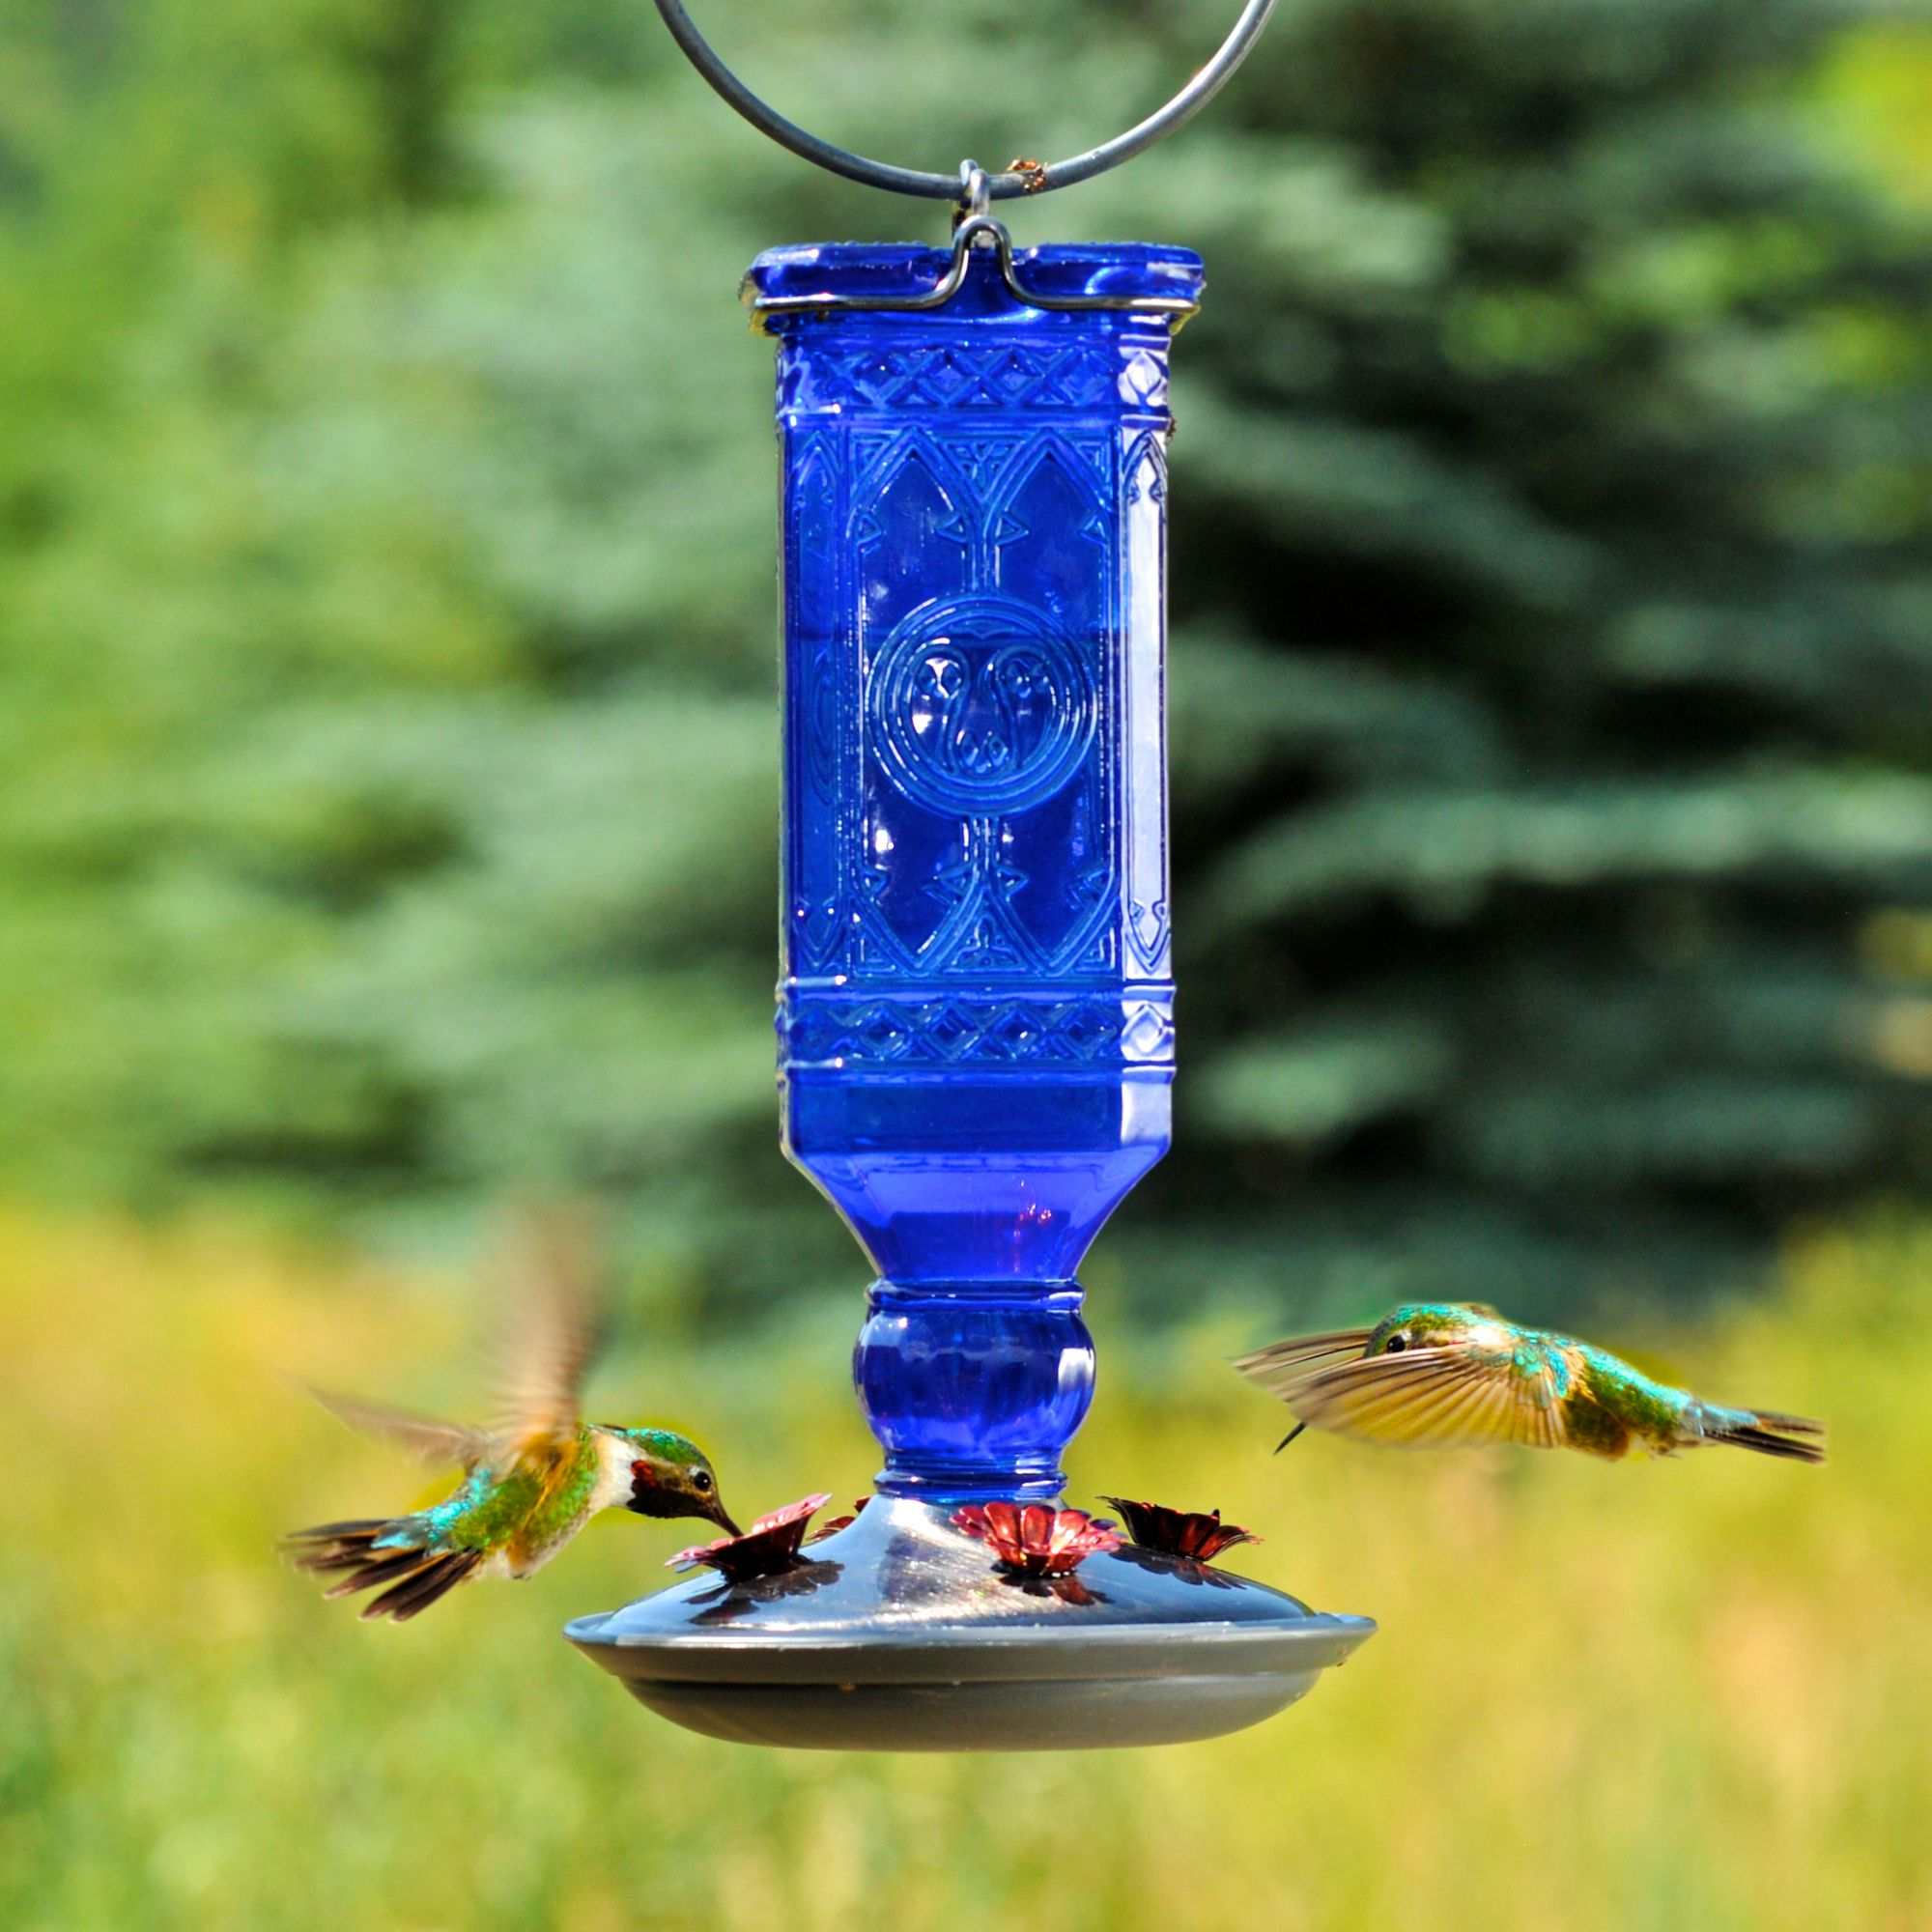 most hummingbird charming feeders beautiful glass feeder image full sale for